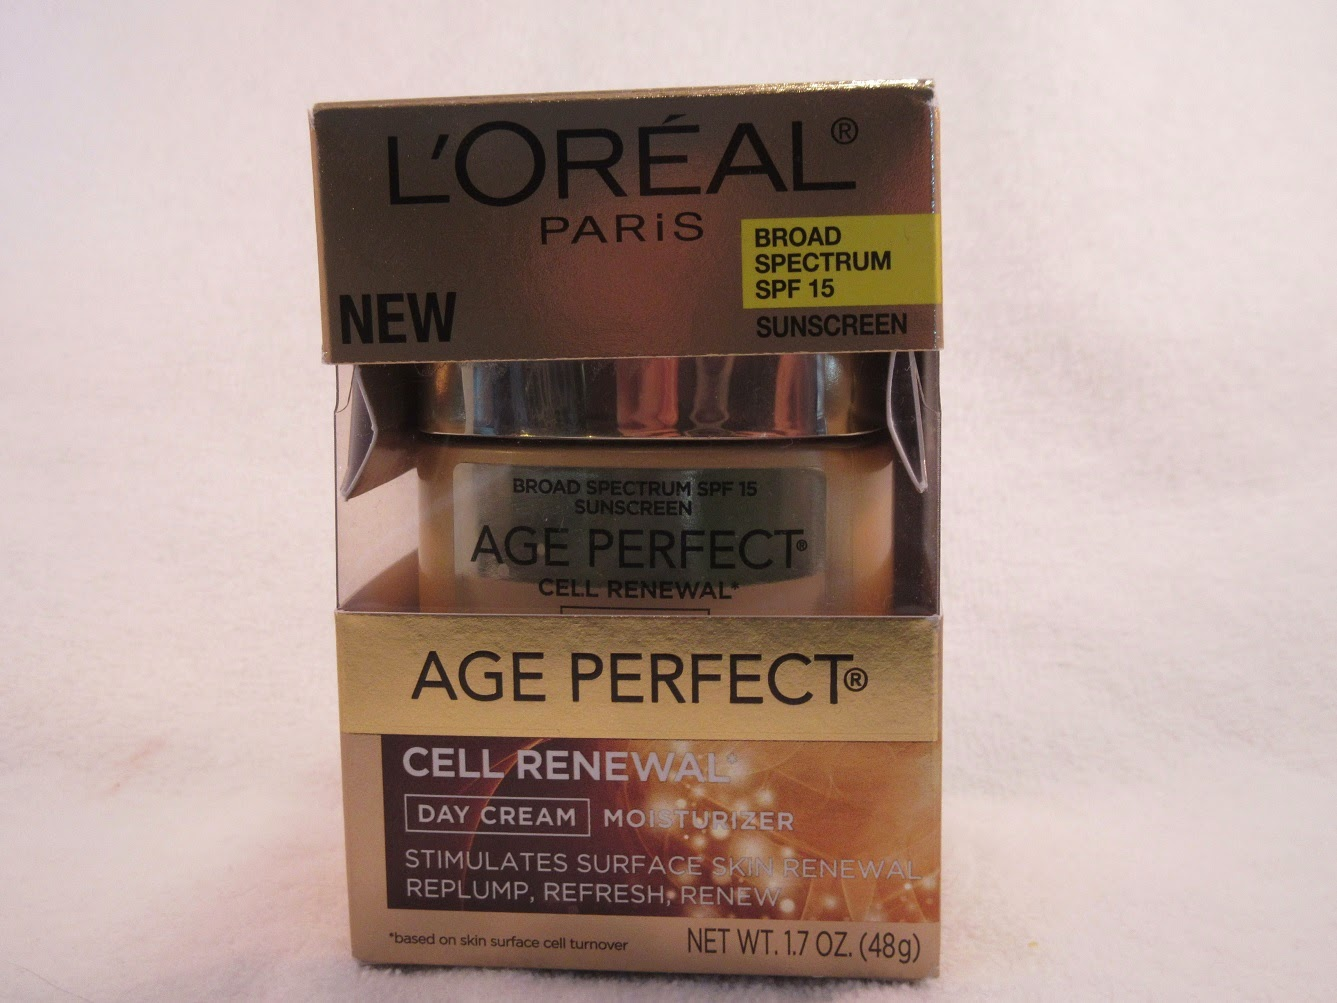 L'Oreal Age Perfect Cell Renewal Day Cream Review - Neon Chipmunk